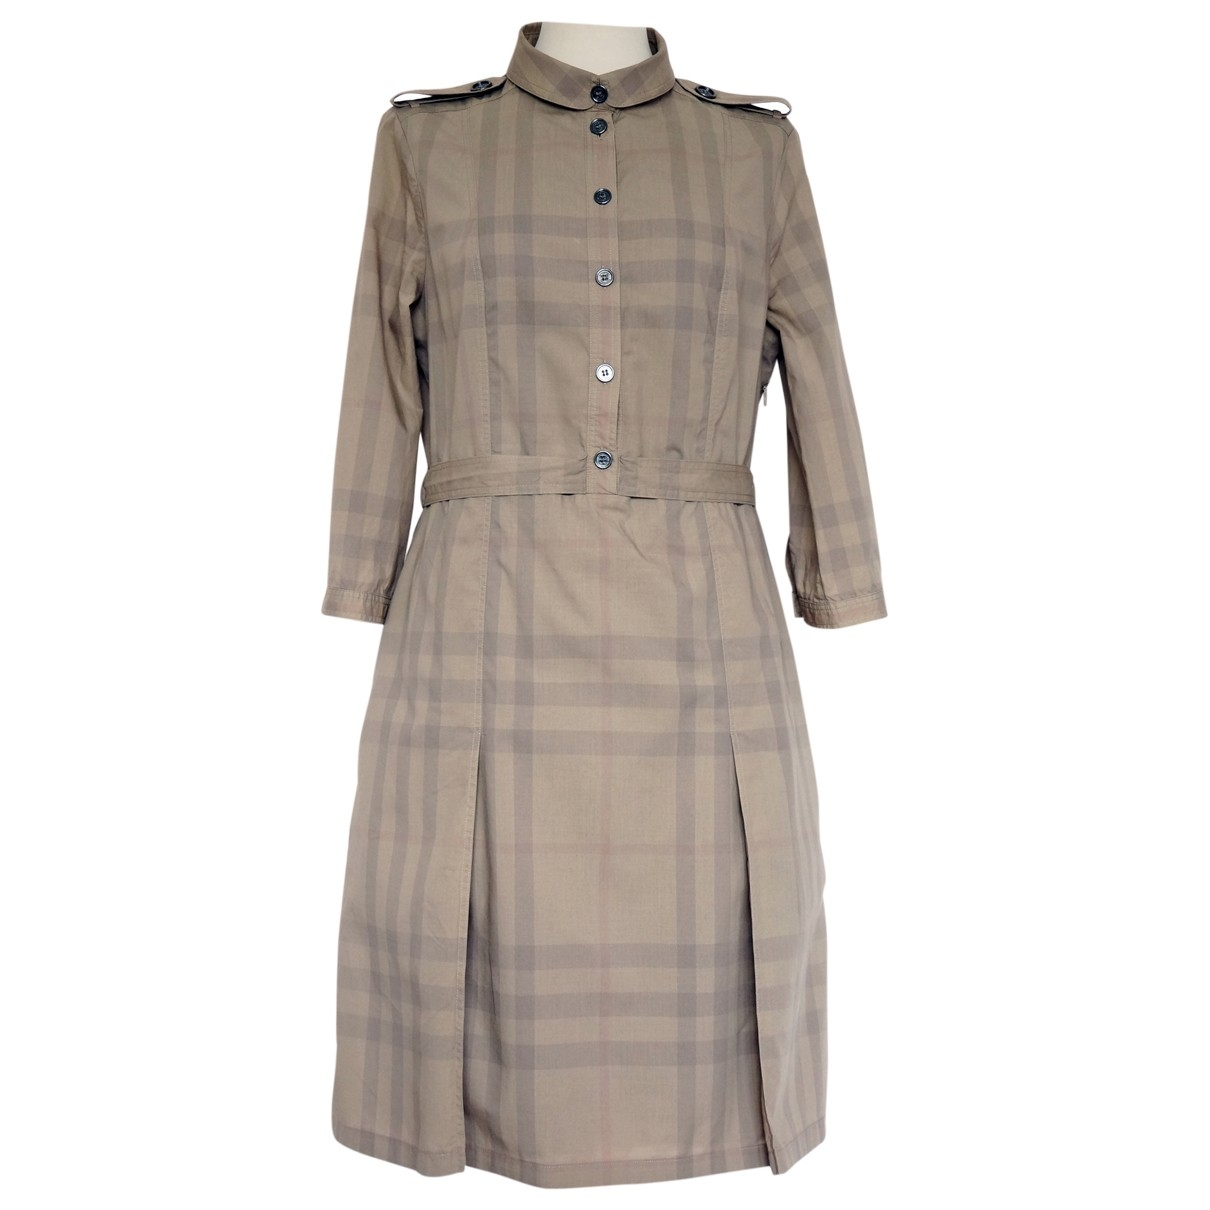 Burberry \N Beige Cotton dress for Women 12 UK